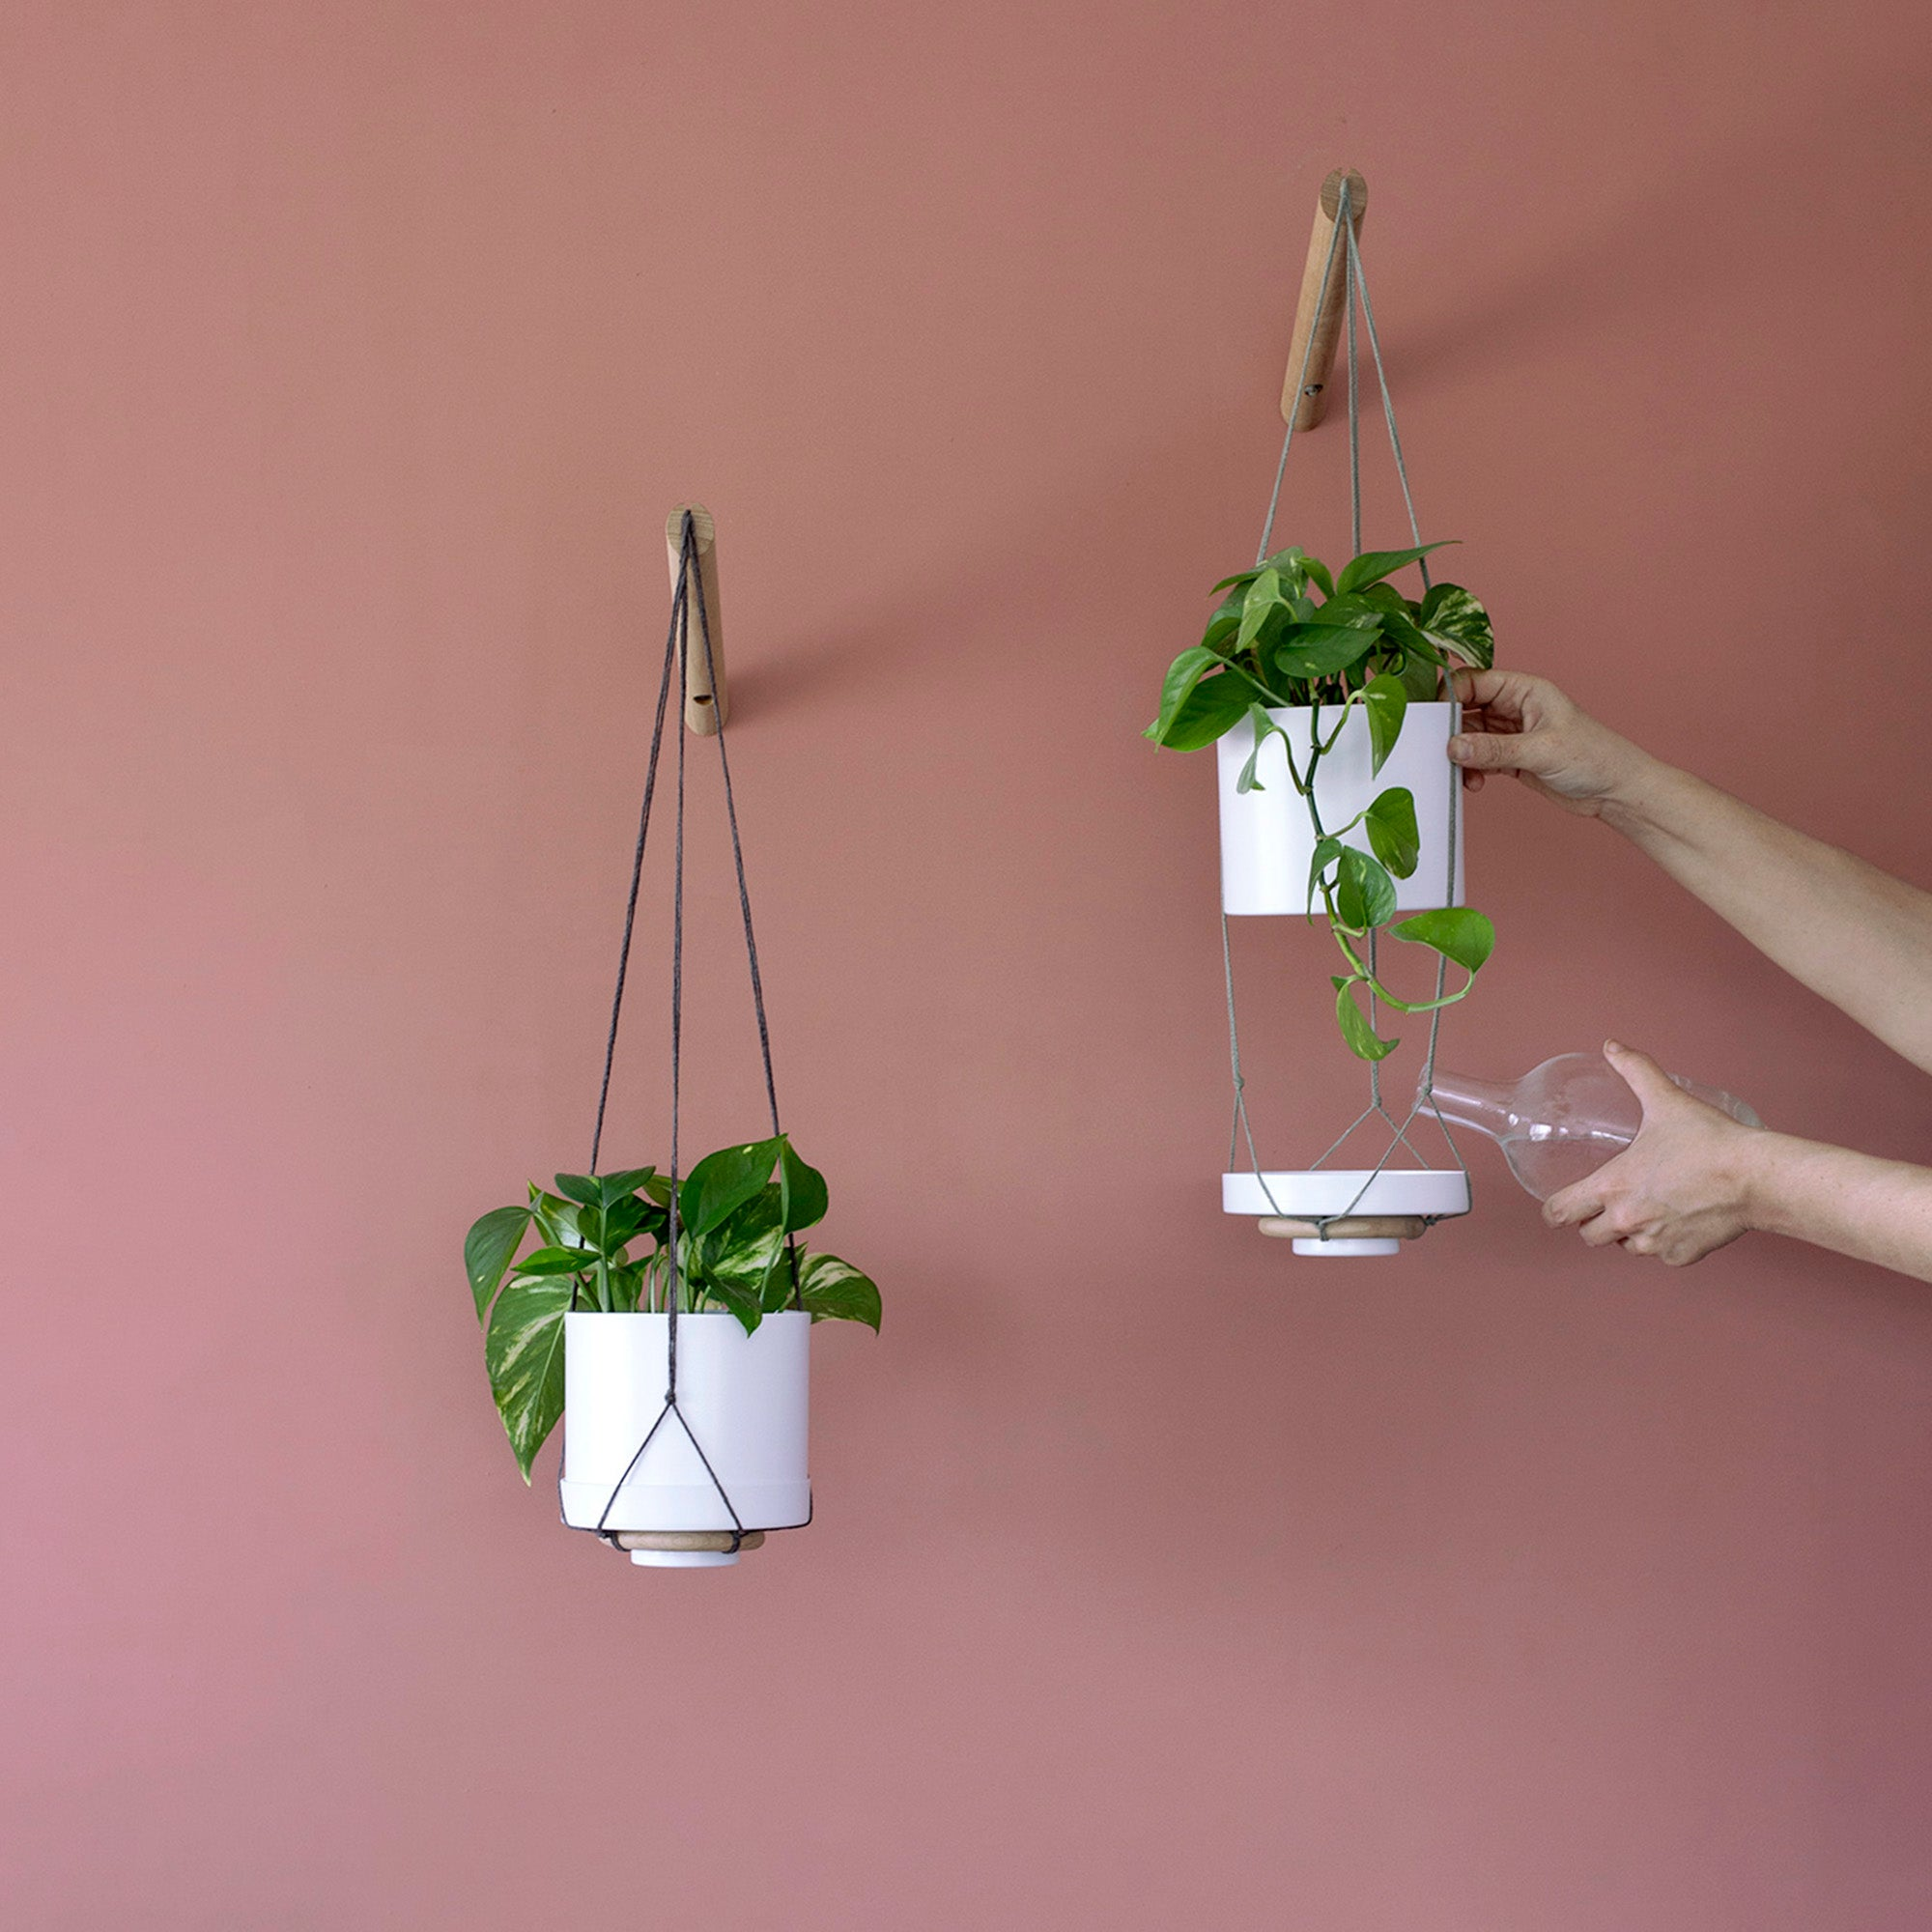 How to water a hanging planter